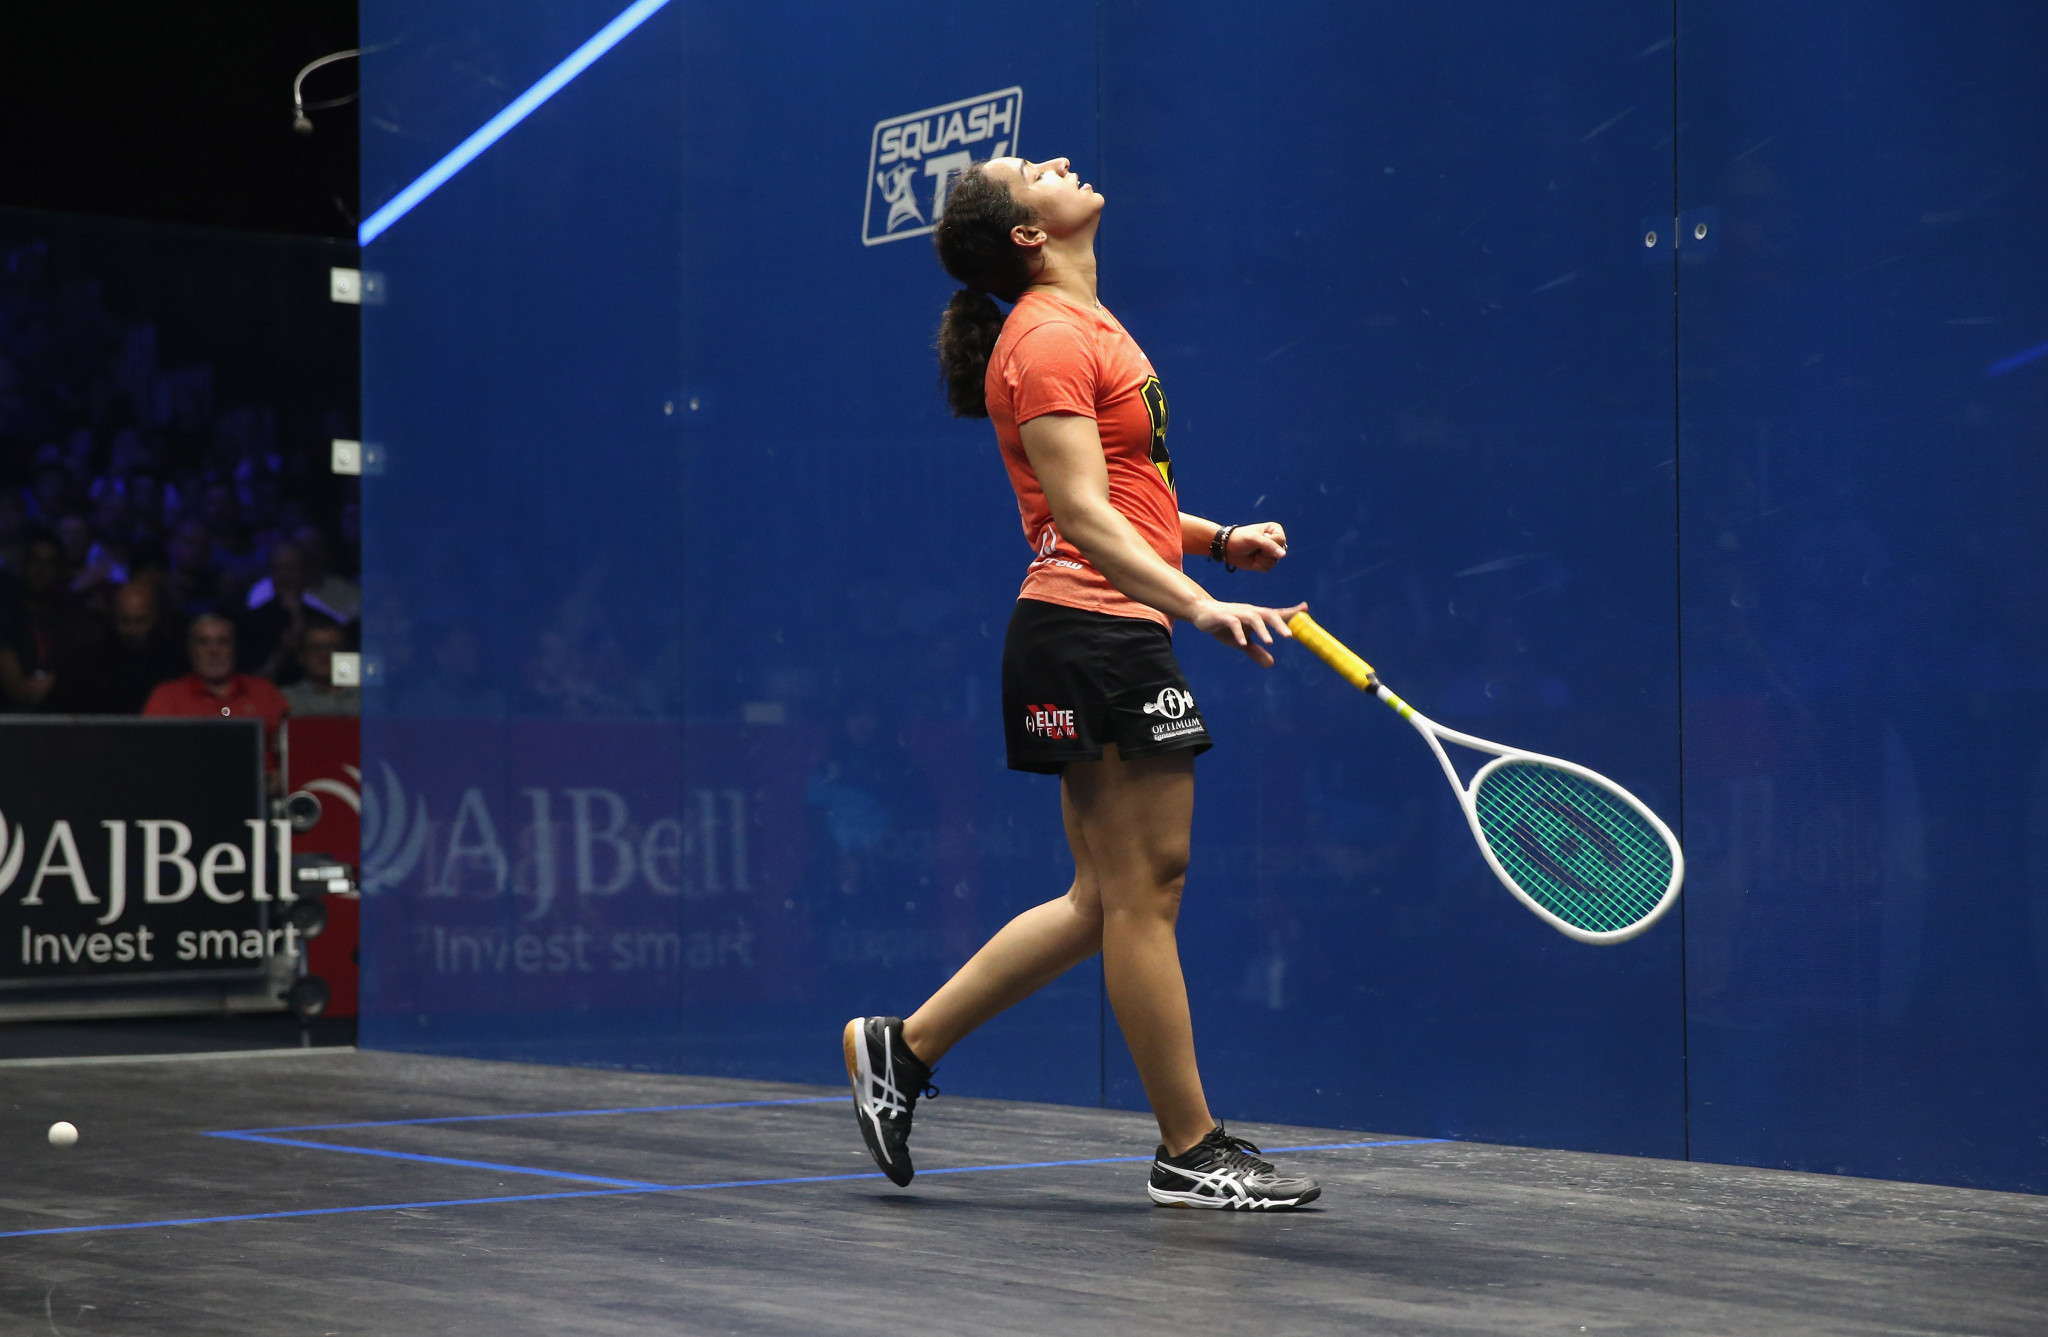 Defending champion Raneem El Welily comfortably won her first match in the women's draw ©Getty Images